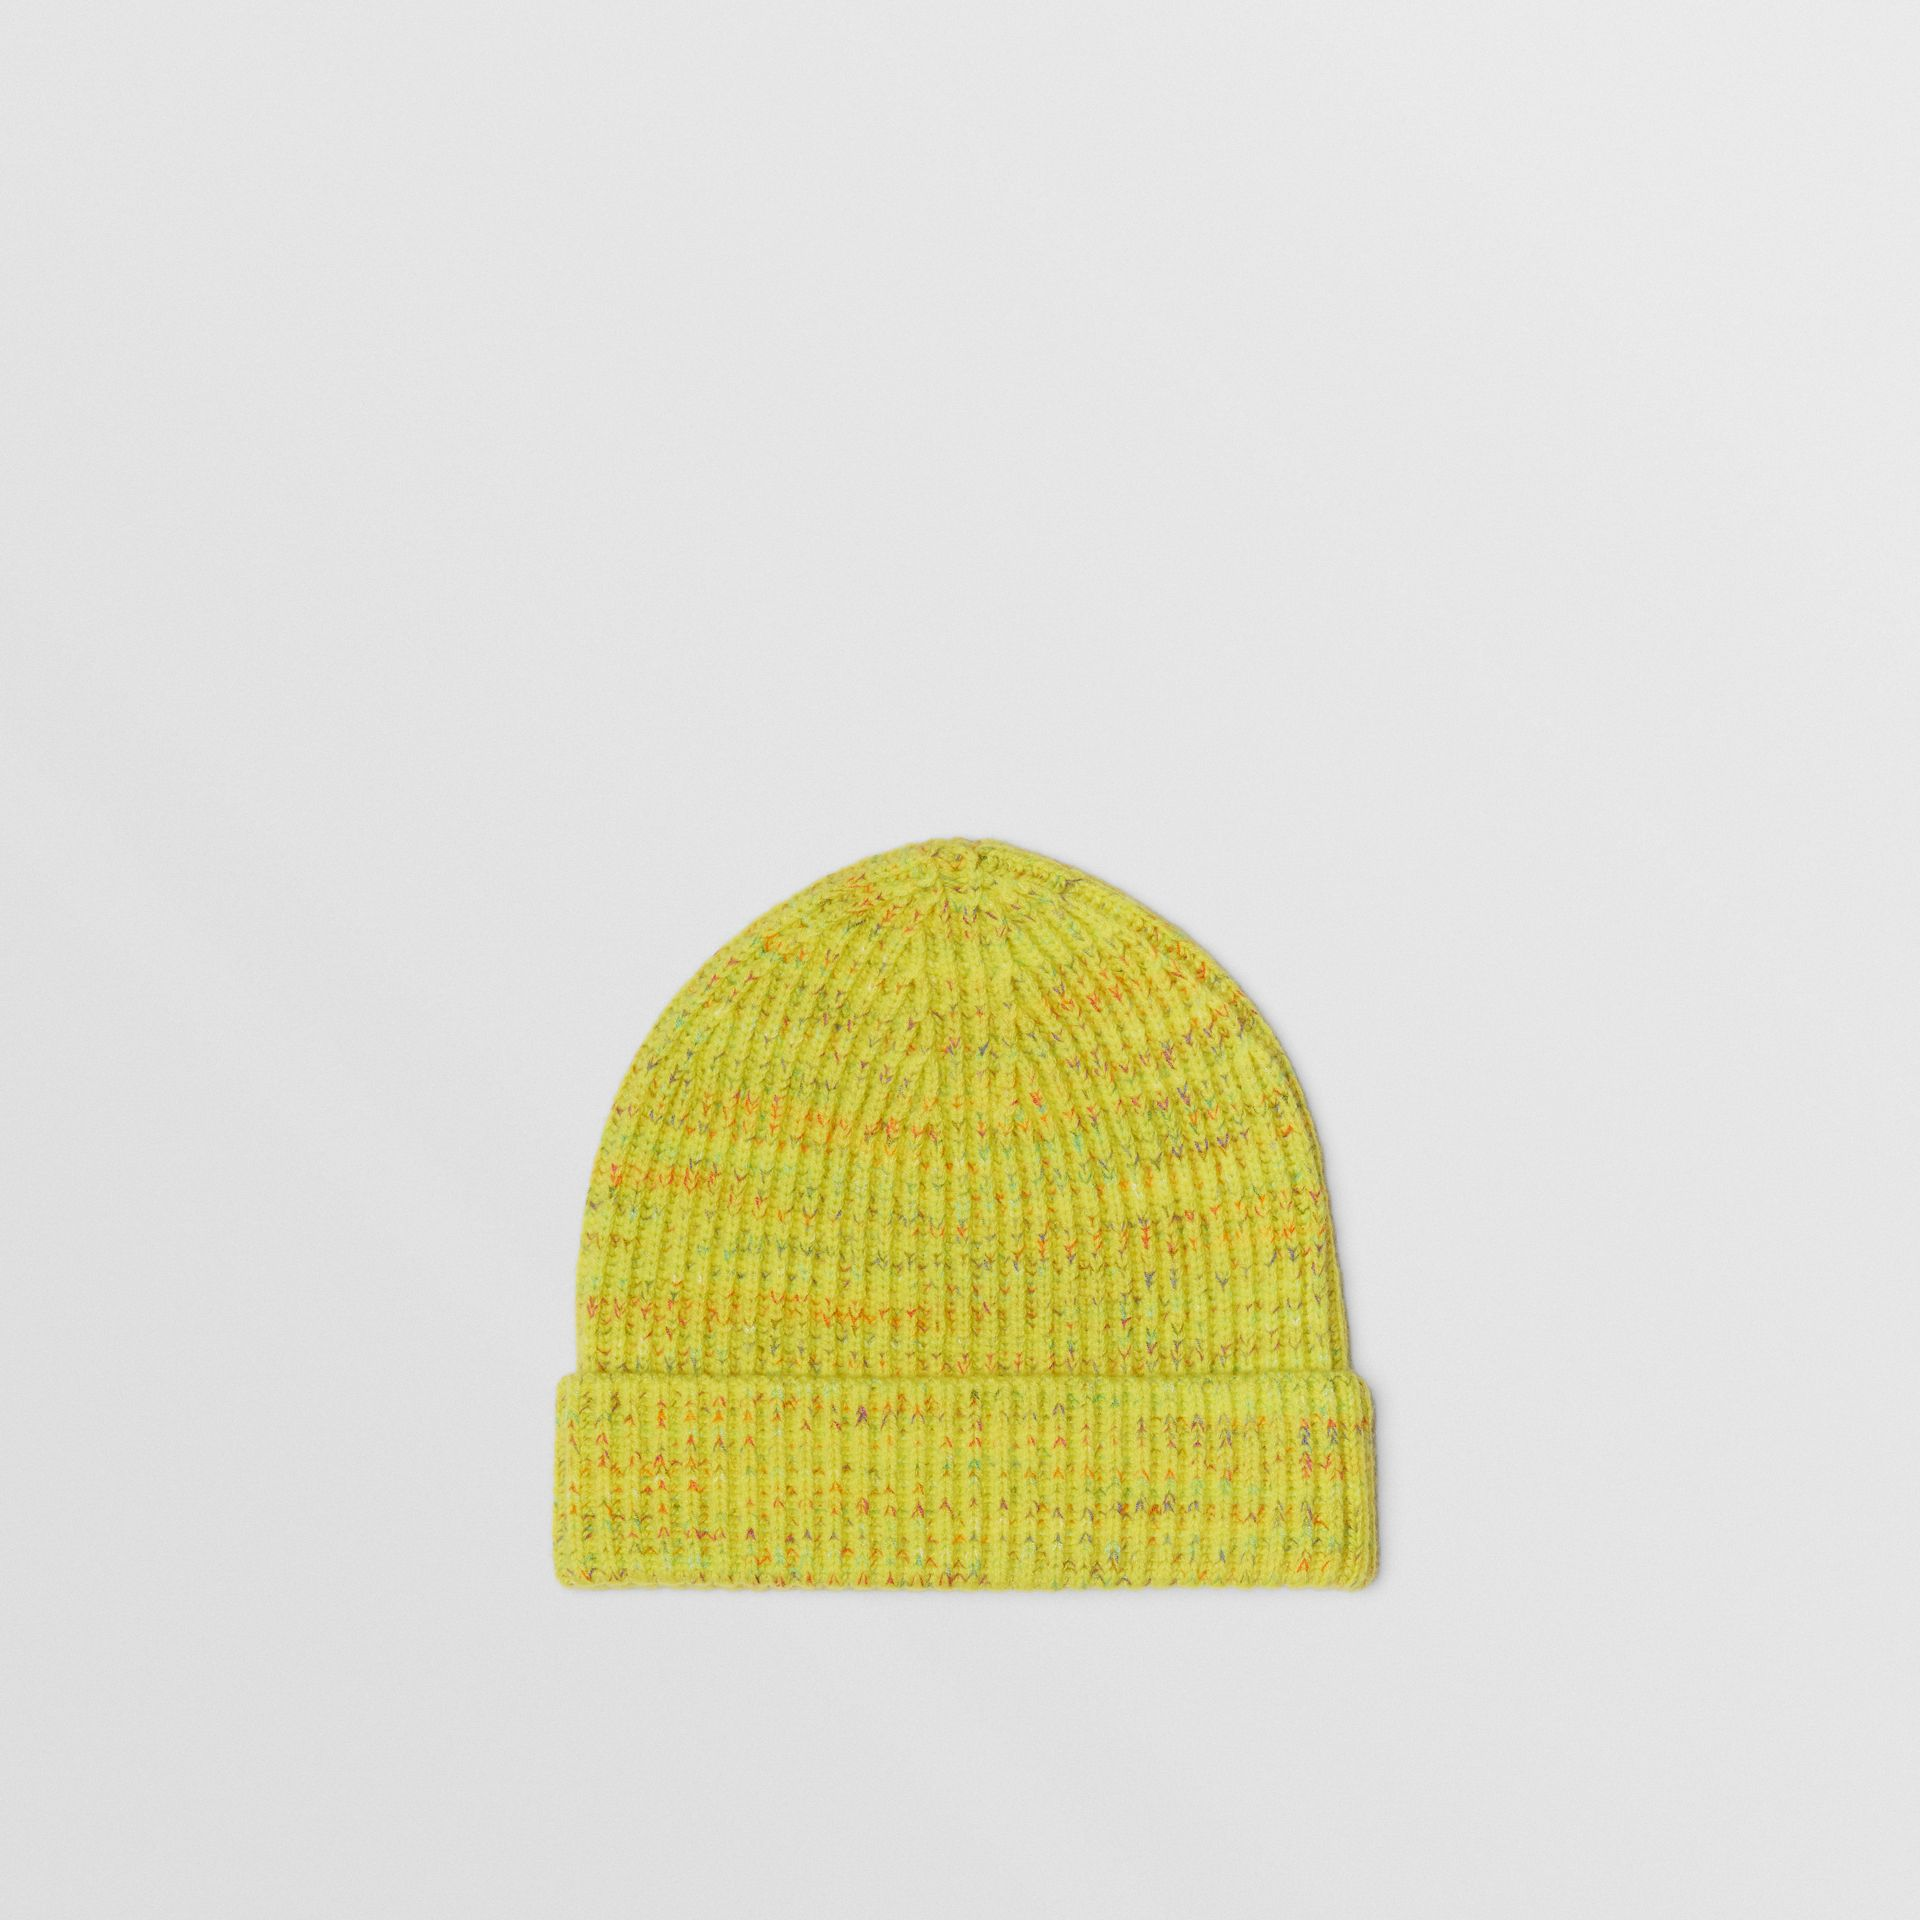 Embroidered Archive Logo Wool Blend Beanie in Gorse Yellow | Burberry - gallery image 4